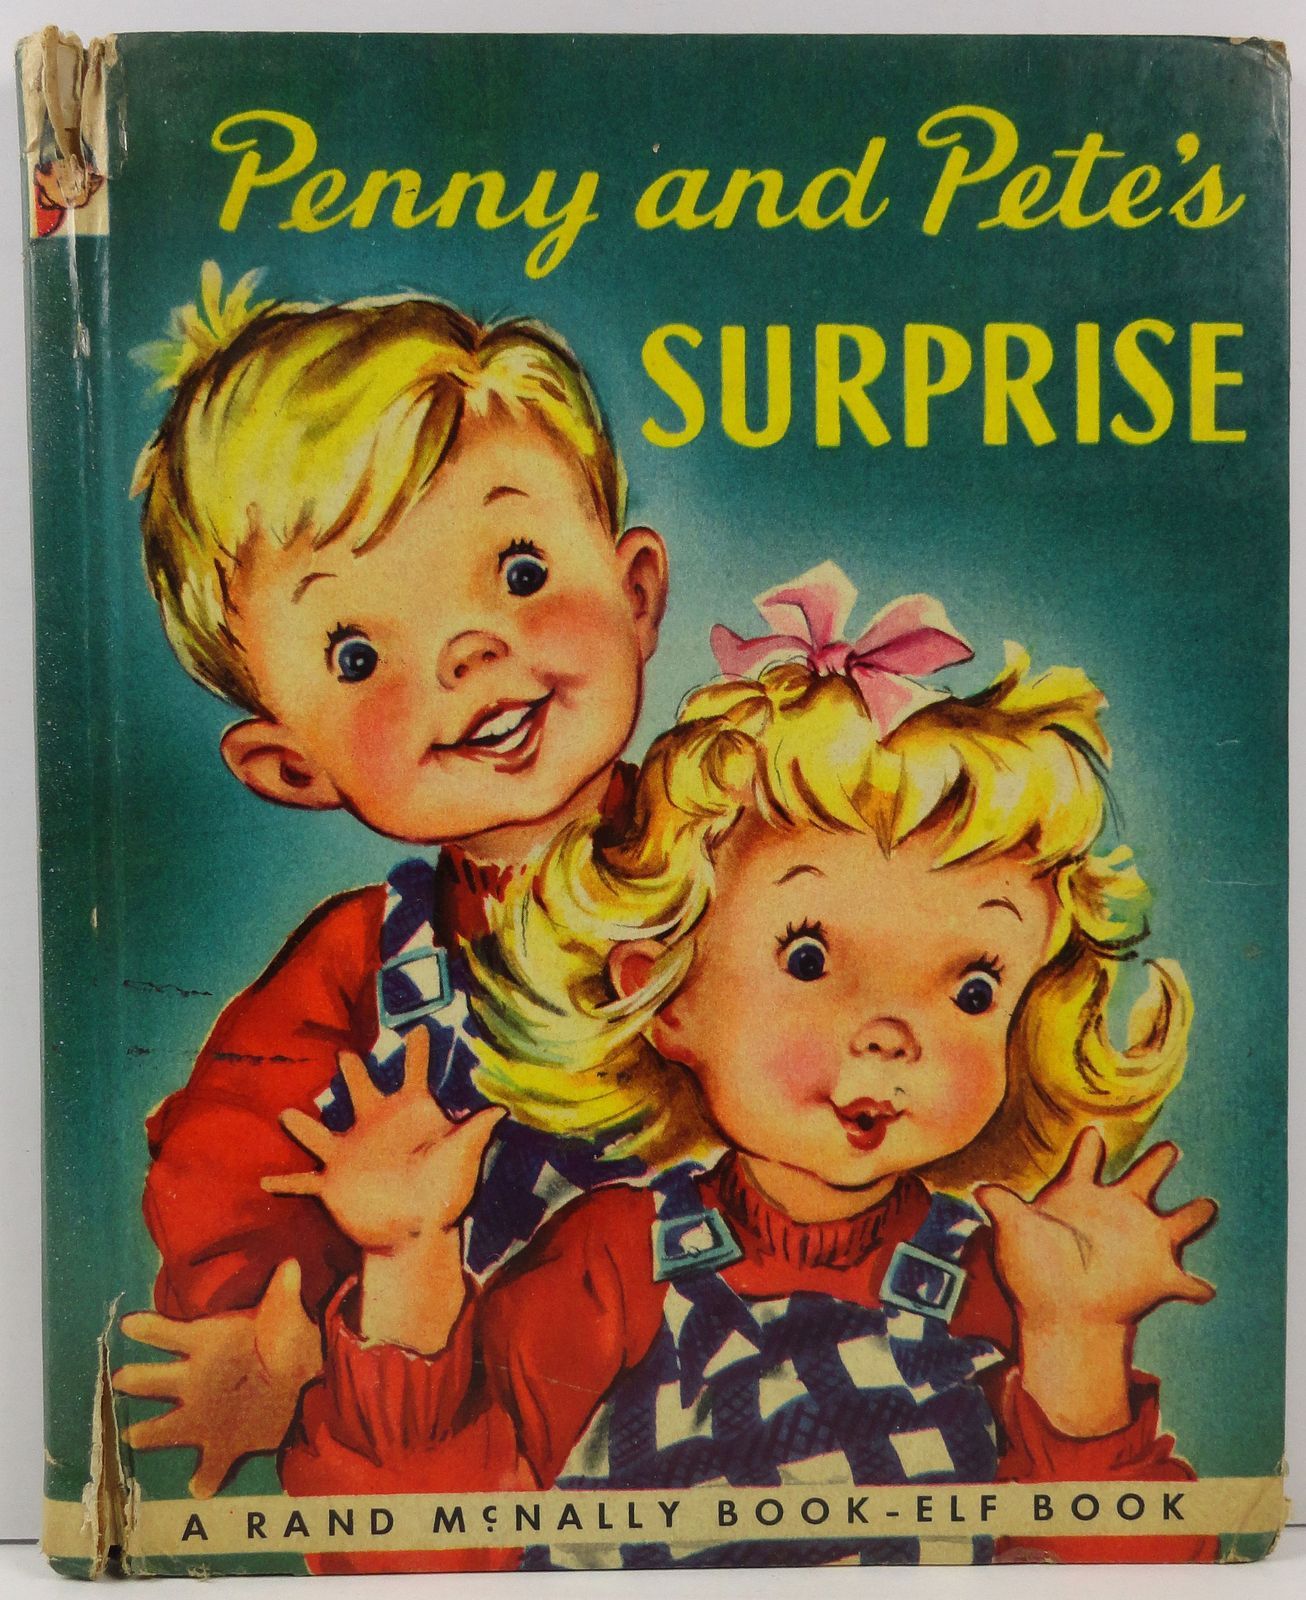 Penny and Pete's Surprise by Ruth Lewis Shuman Elf Book 434